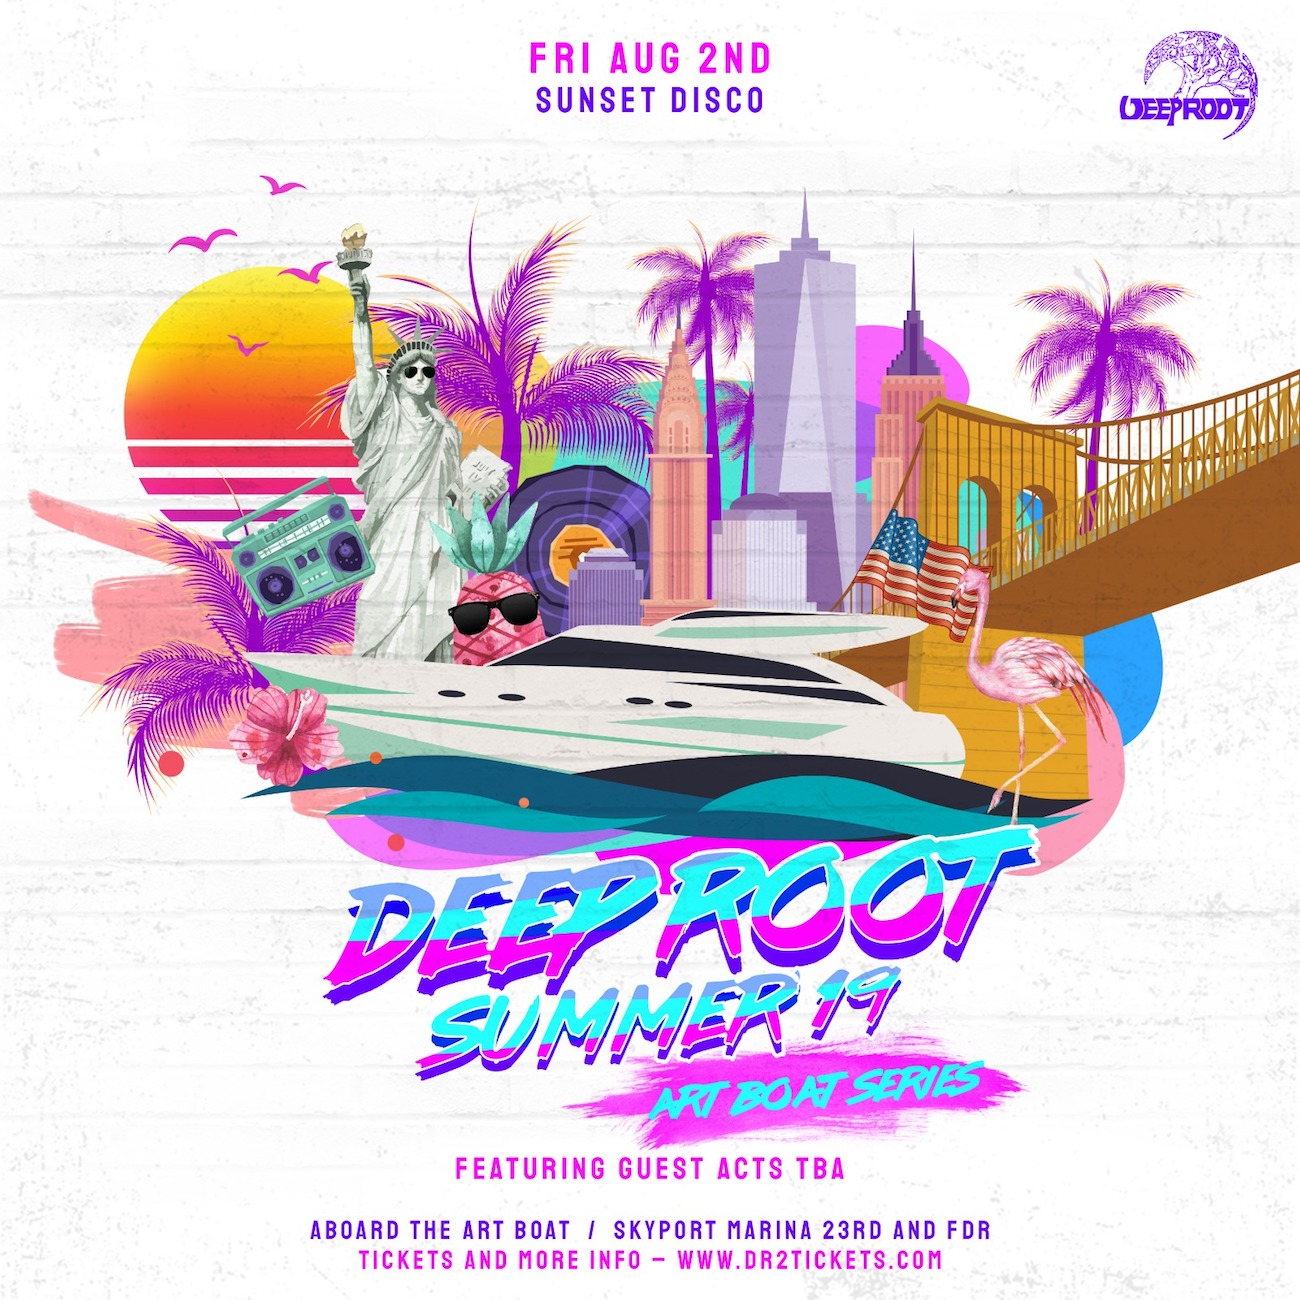 The Art Boat Yacht: Sunset Disco Party